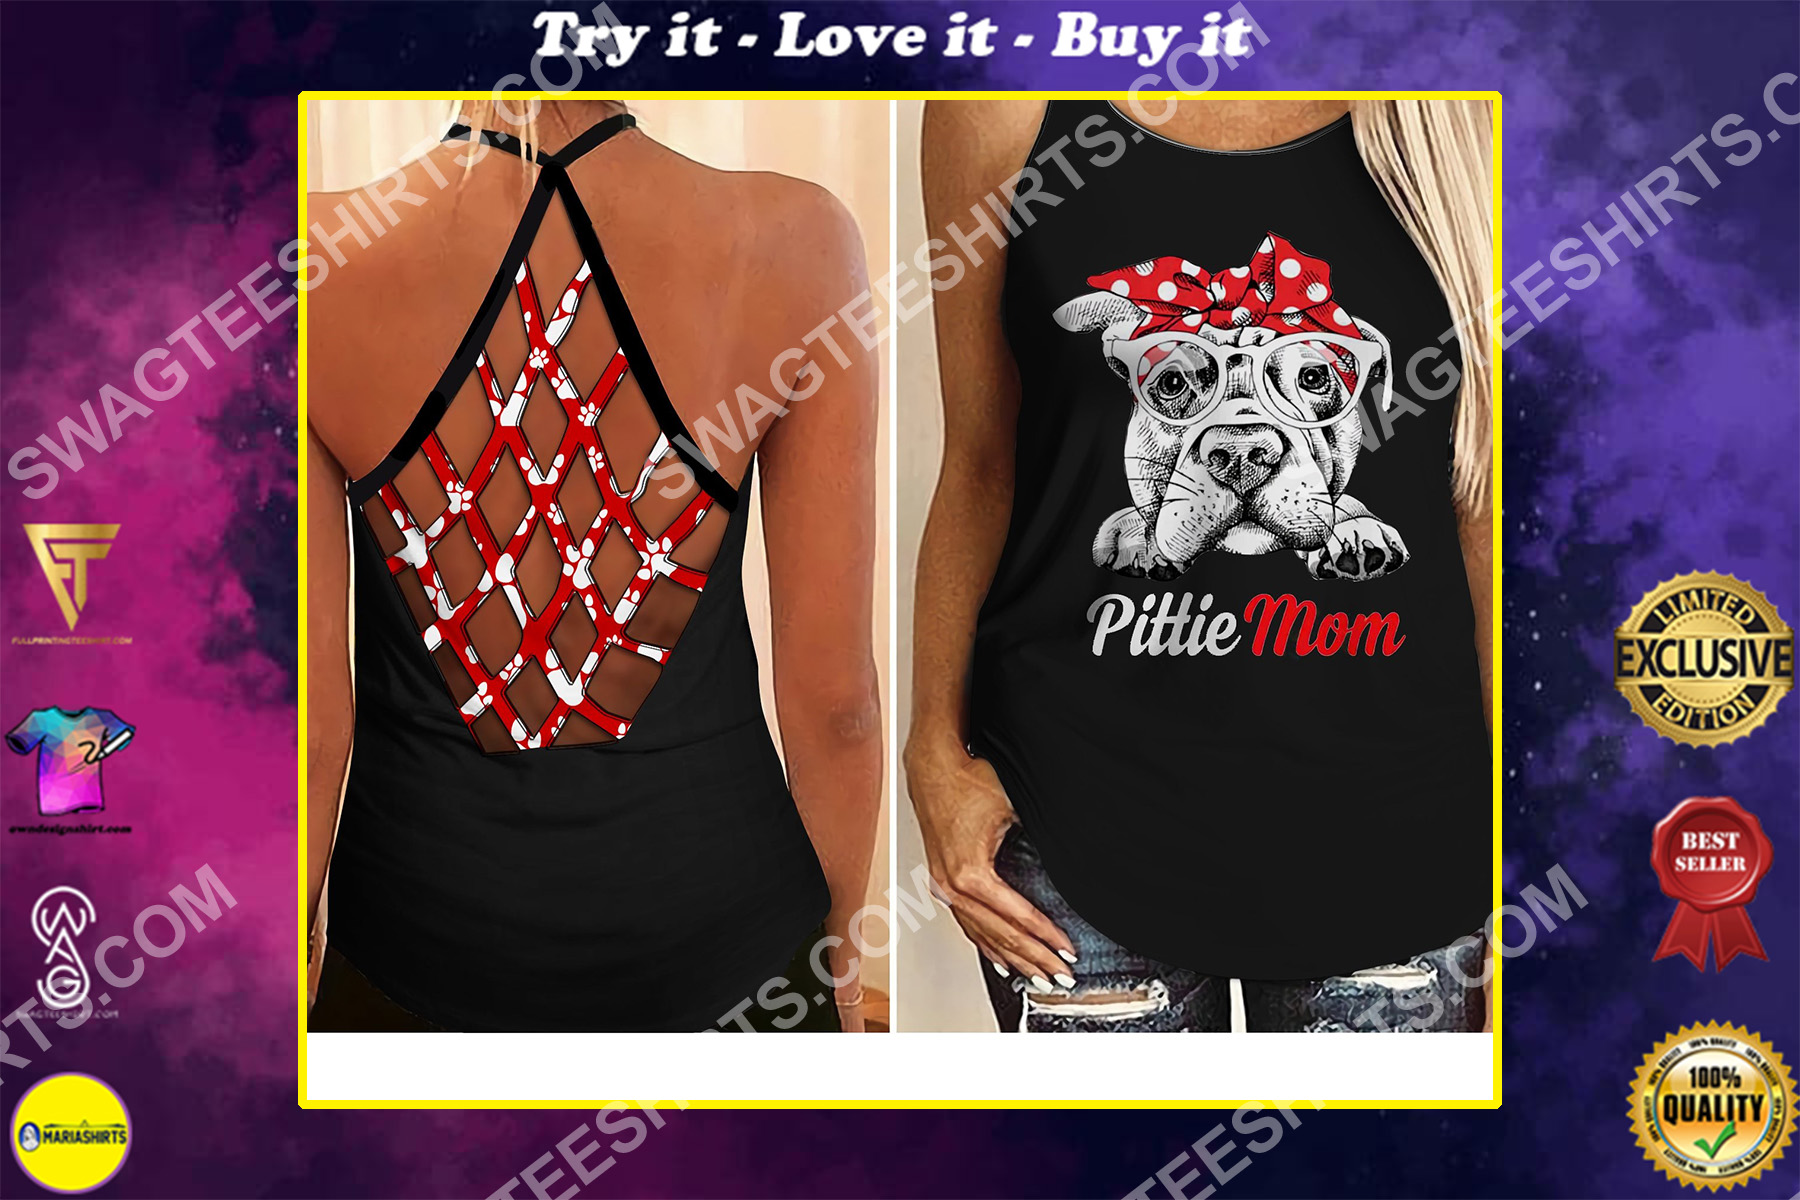 dog lover pittie mom all over printed criss-cross tank top